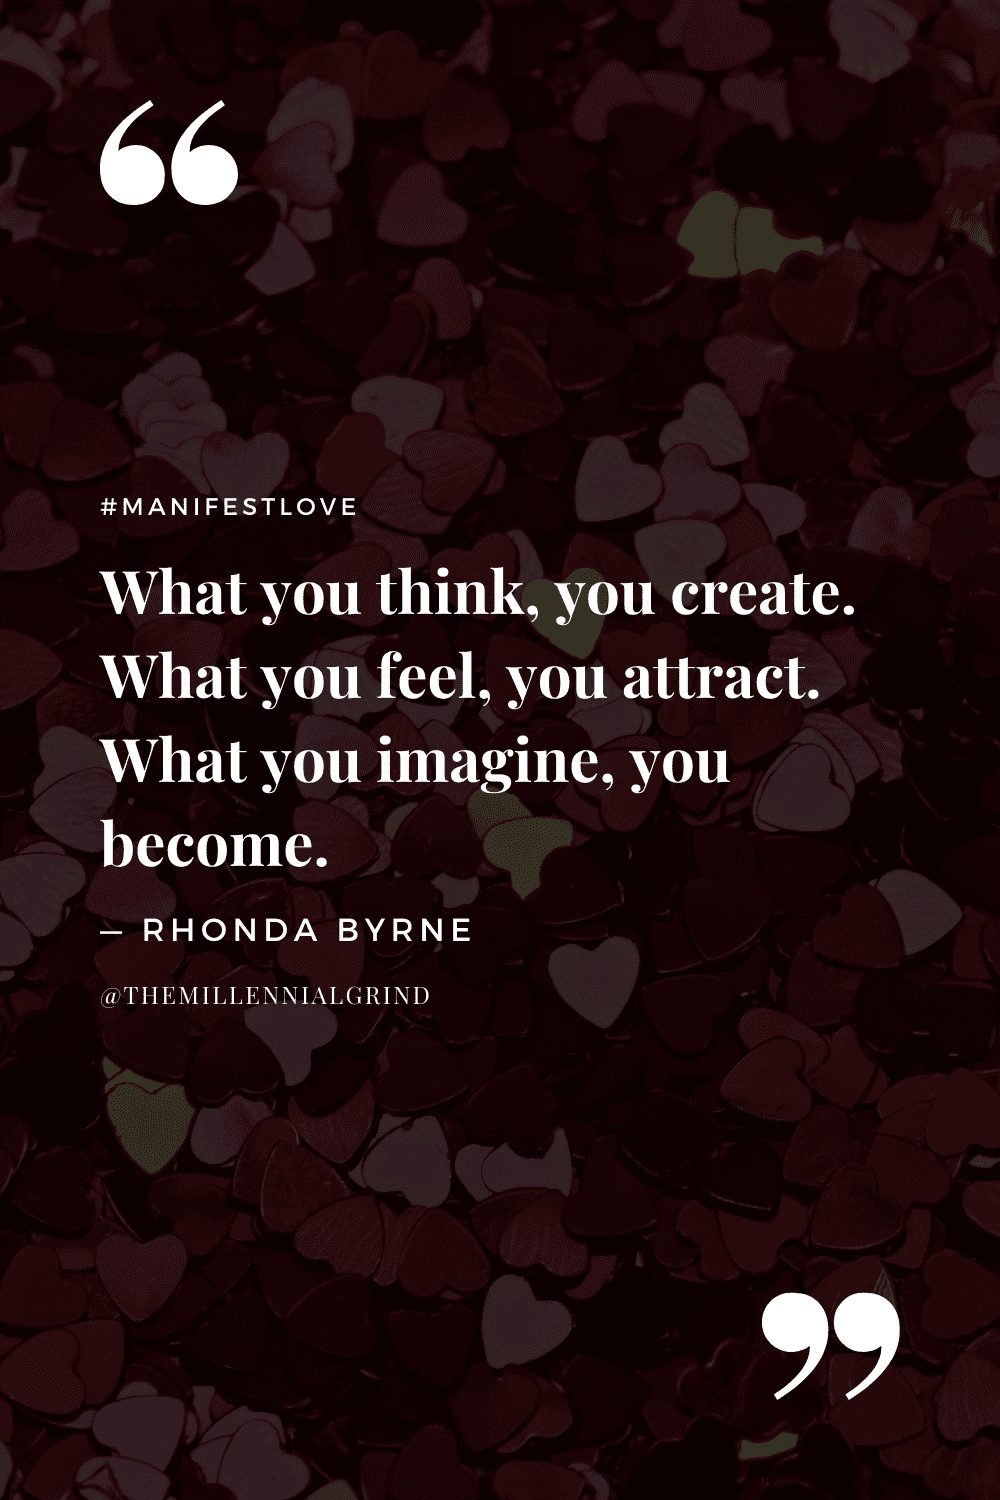 """""""What you think, you create. What you feel, you attract. What you imagine, you become."""" – Rhonda Byrne"""